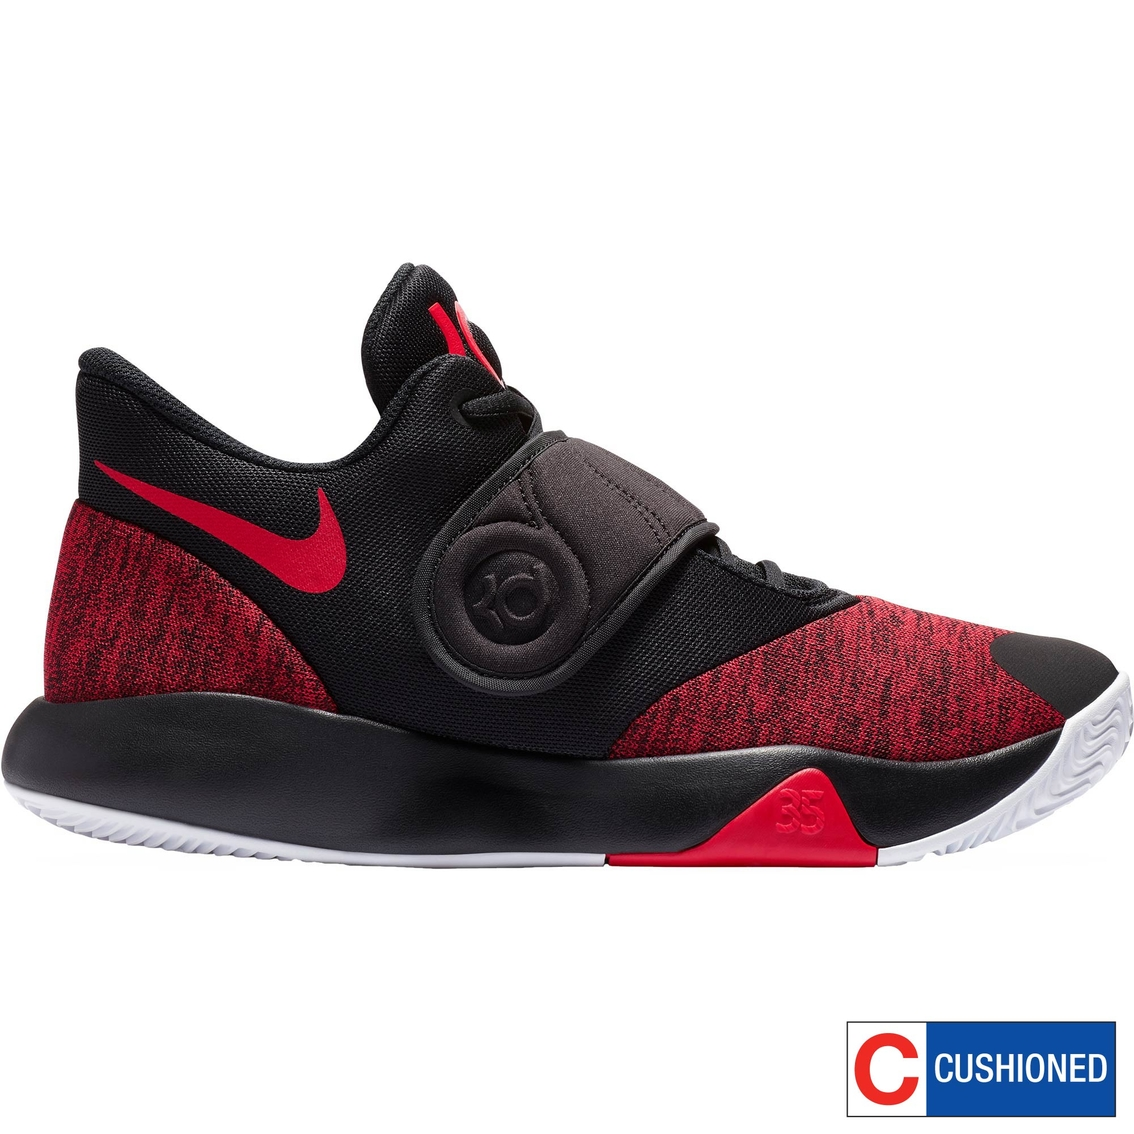 bd6777dfe140 Nike Kd Trey 5 Vi Basketball Shoes